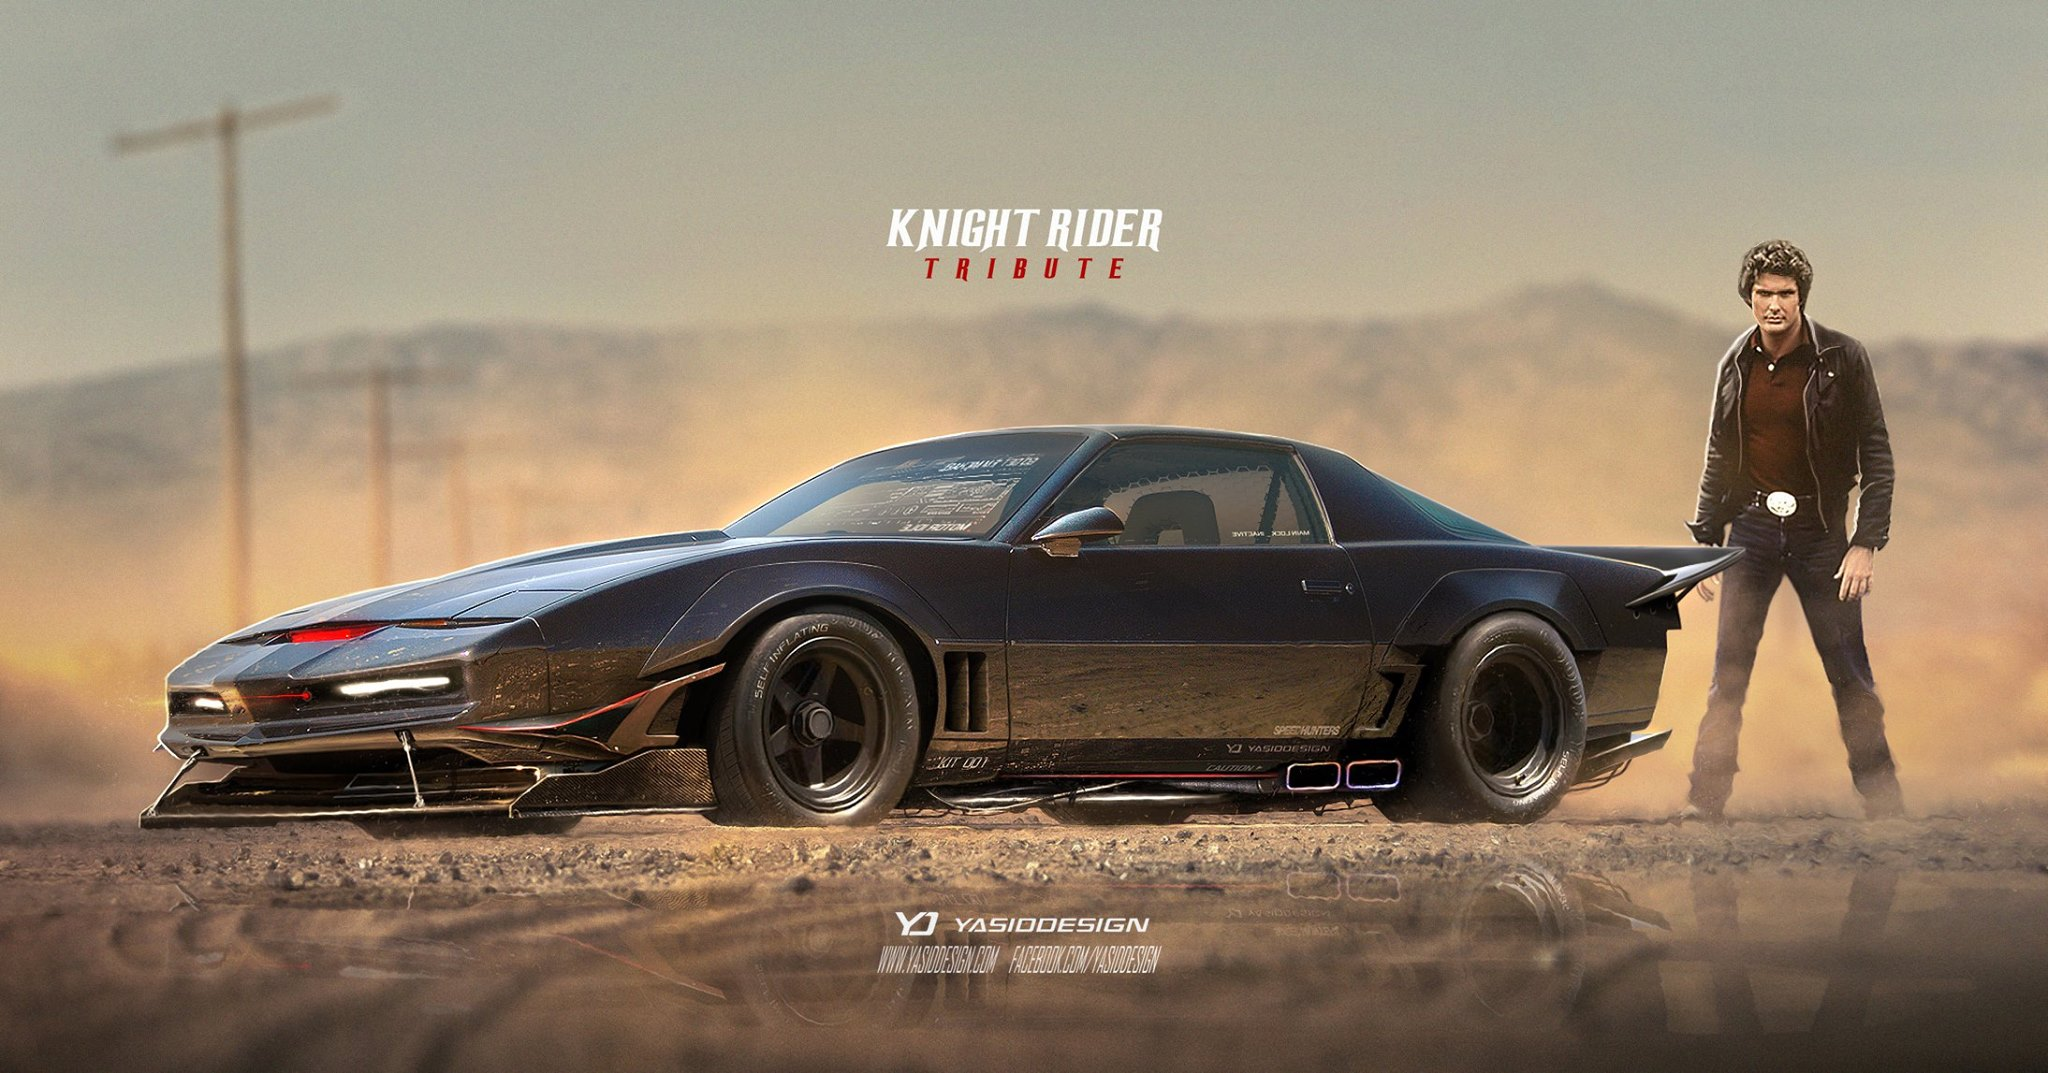 Knight Rider Kitt Car Gets A Futuristic Makeover With Racing Spoilers